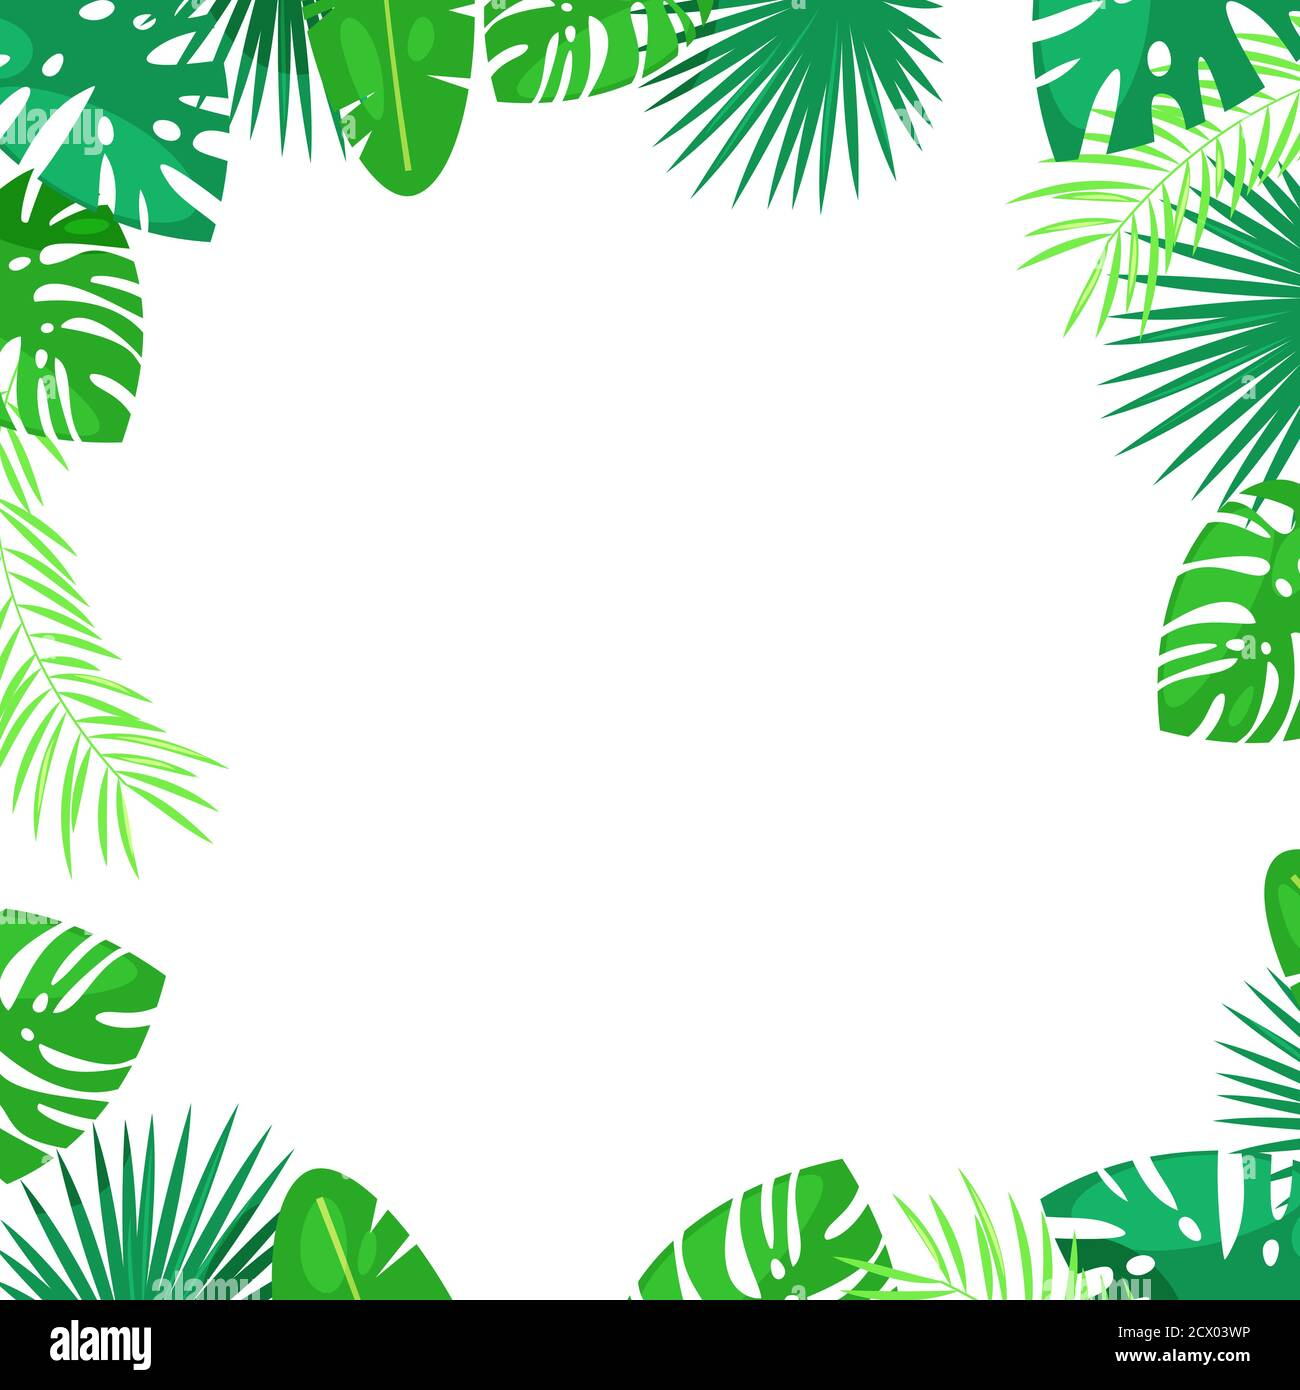 Jungle Border Cartoon High Resolution Stock Photography And Images Alamy Are you searching for cartoon tree png images or vector? https www alamy com tropical palm leaves vector square frame white background with place for text jungle exotic plants summer cartoon illustration image377401858 html